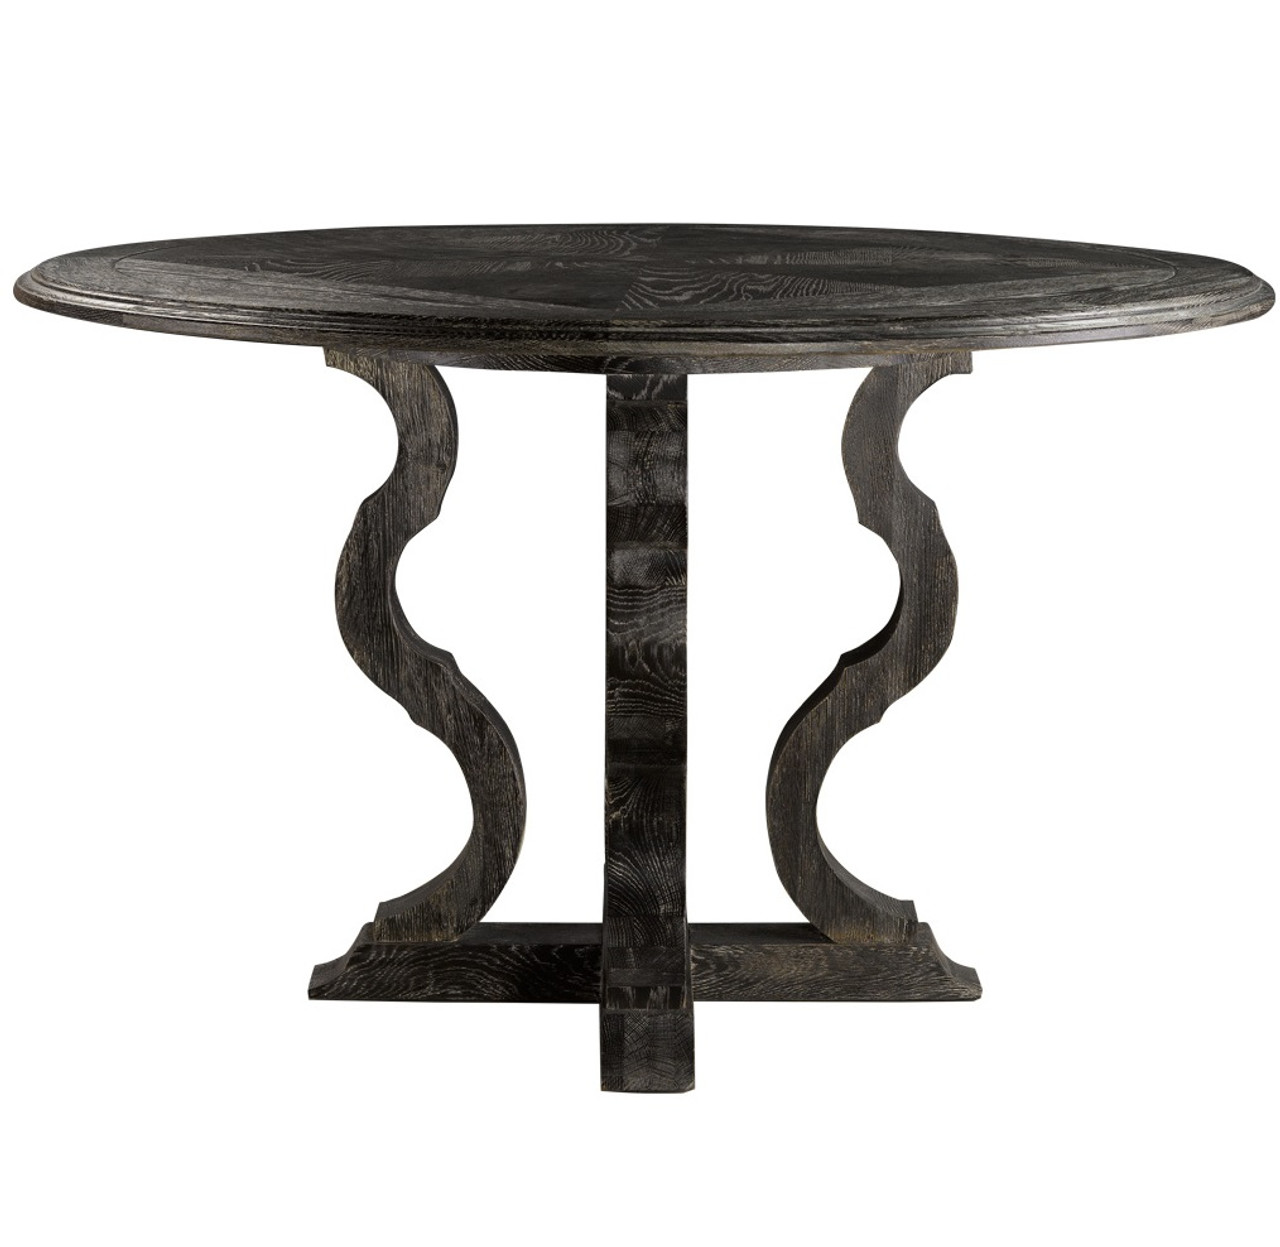 Black round pedestal dining table - French Antique Black Round Pedestal Dining Table 50